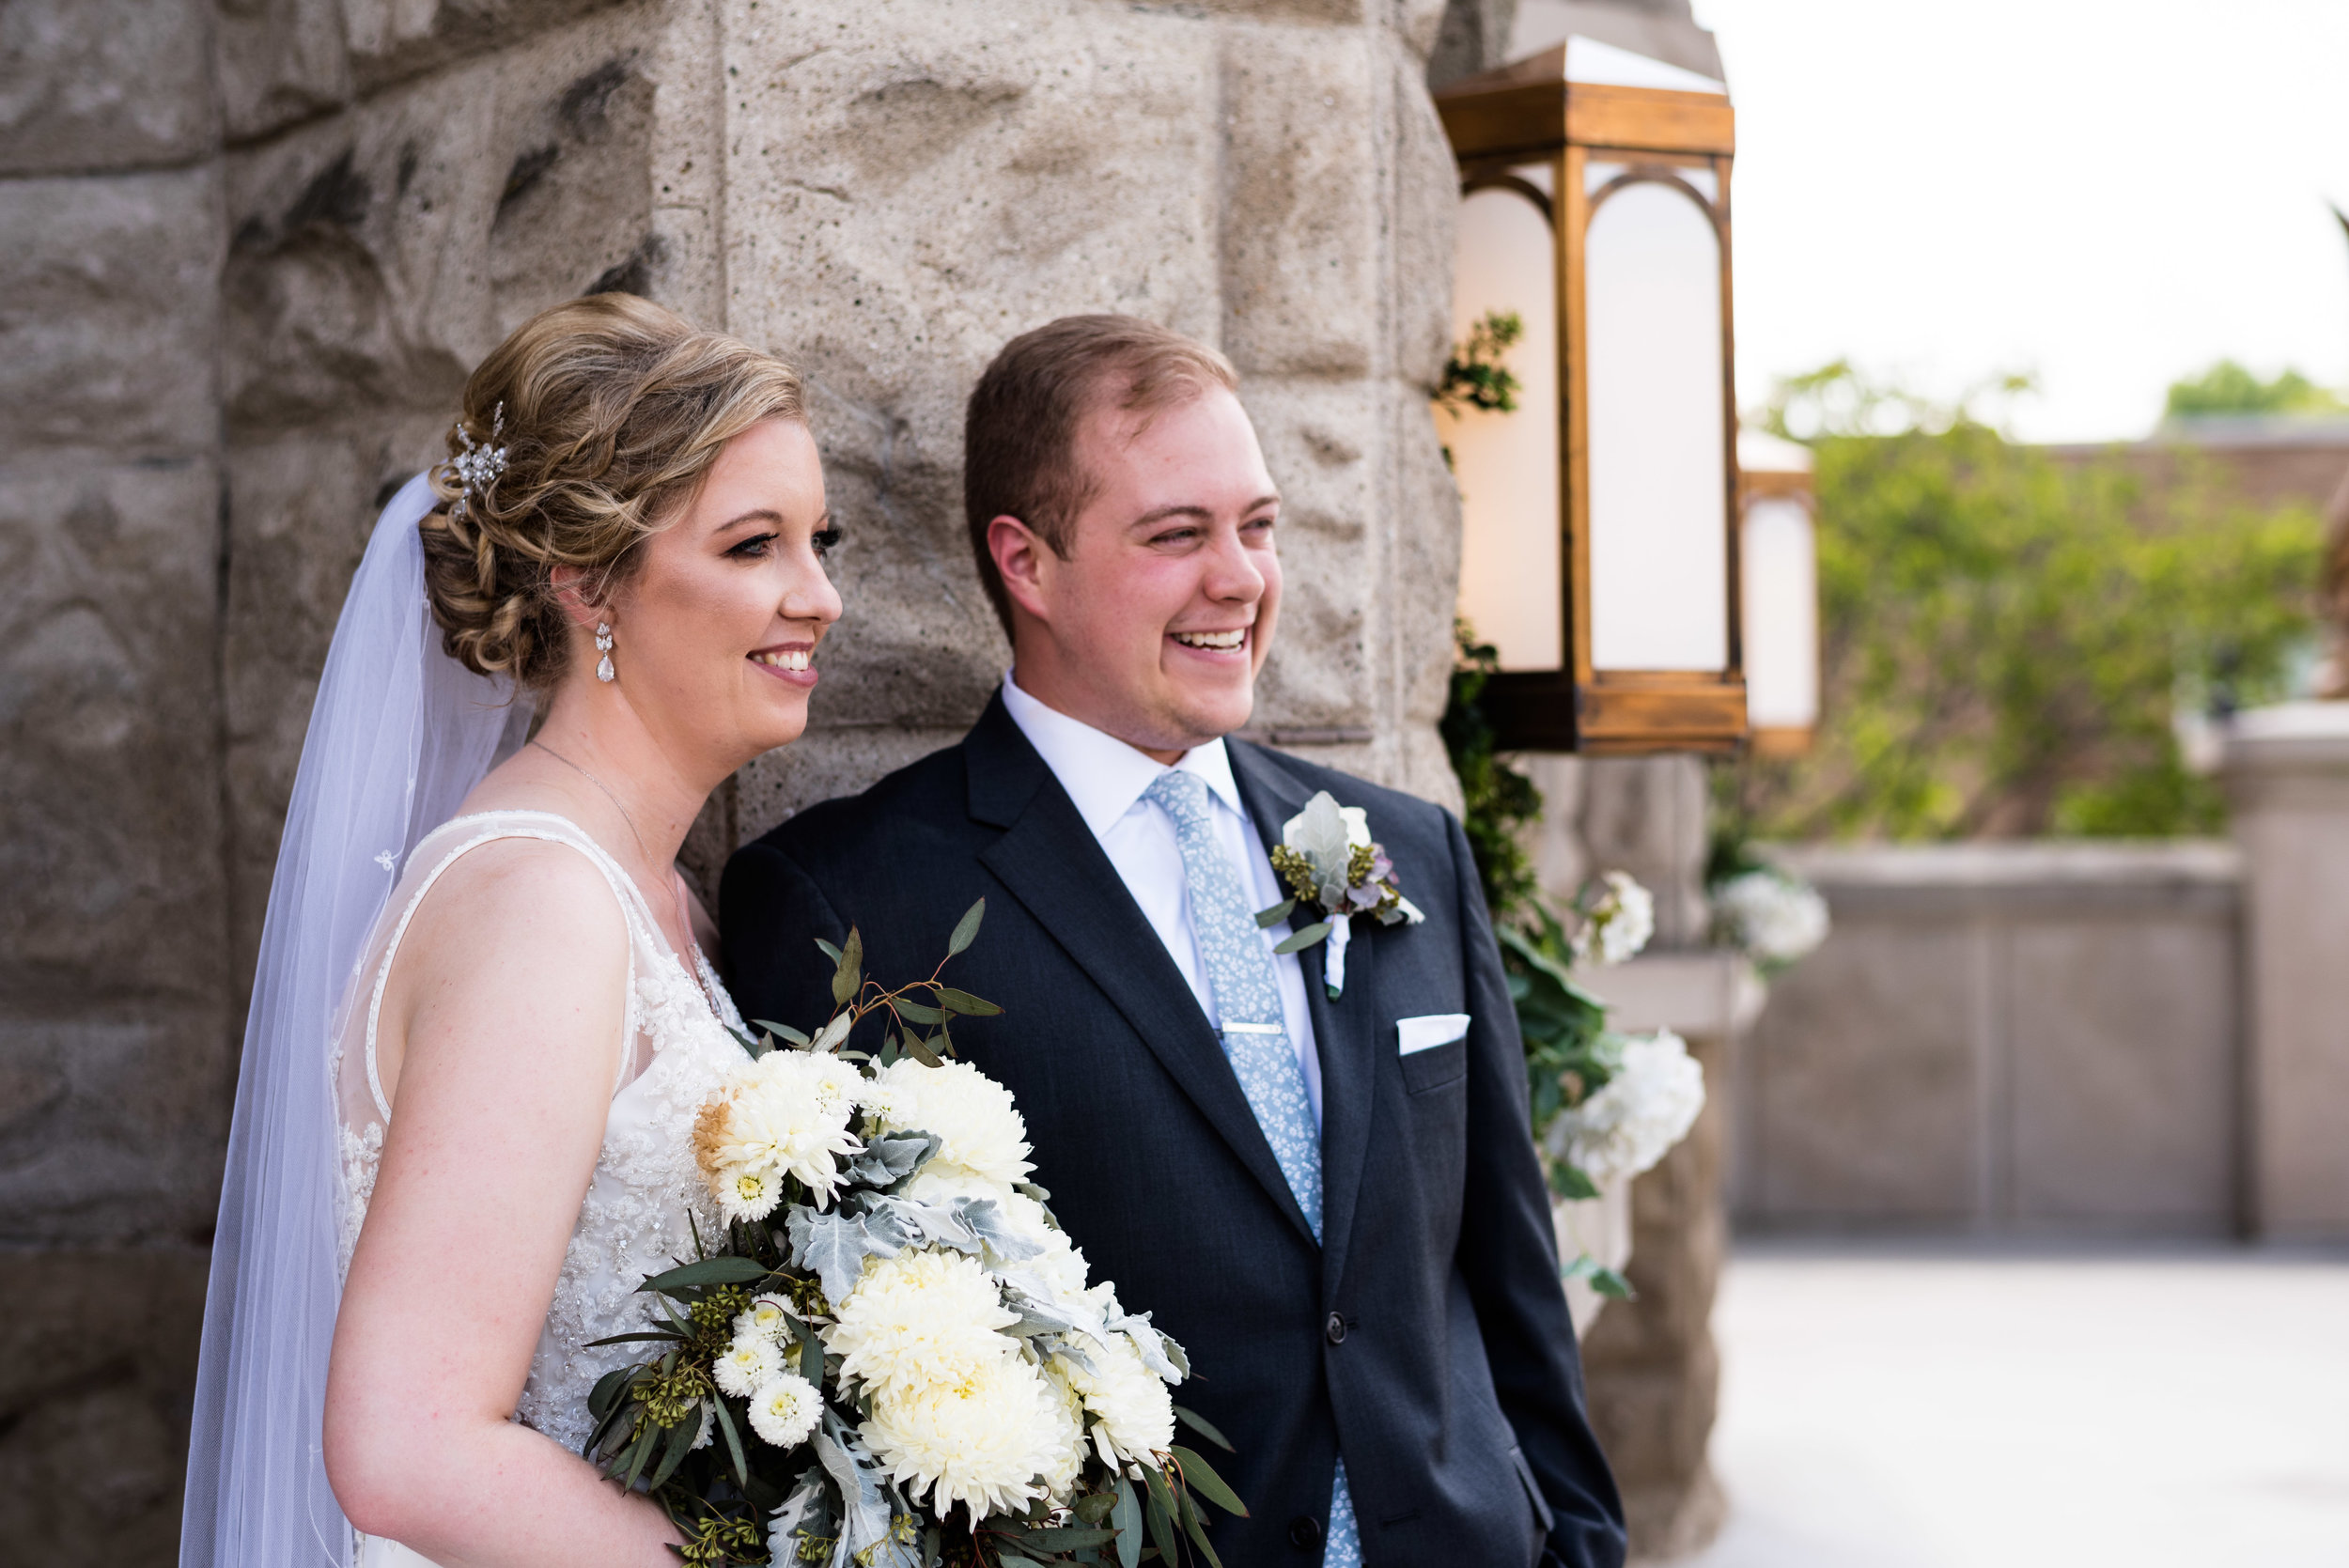 photography for weddings in findlay